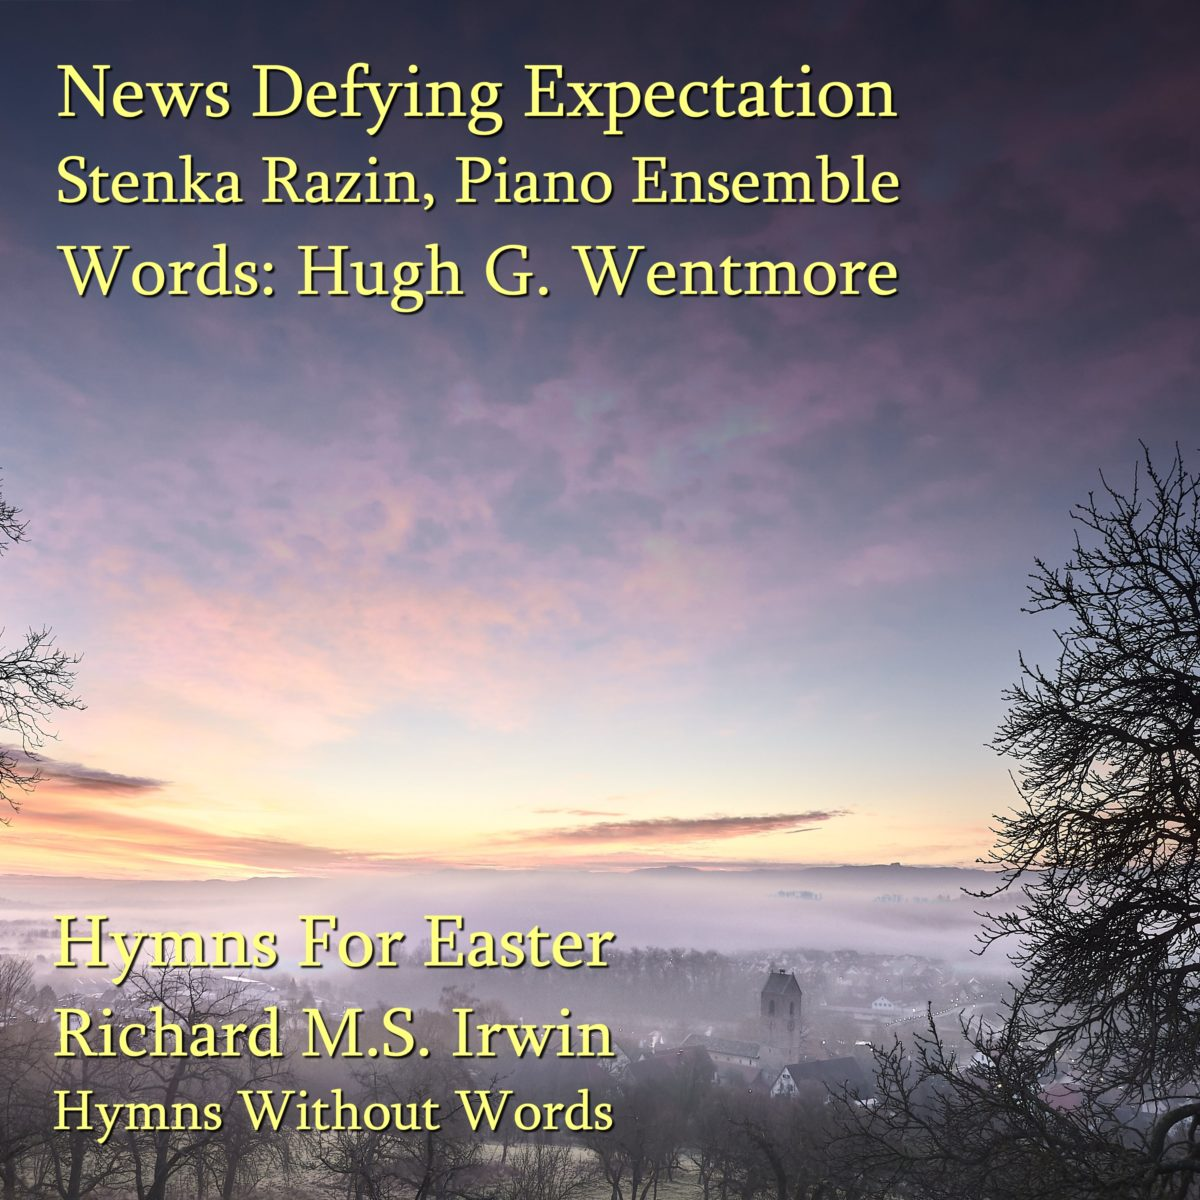 News Defying Expectation (Stenka Razin – 3 Verses) – Piano Ensemble